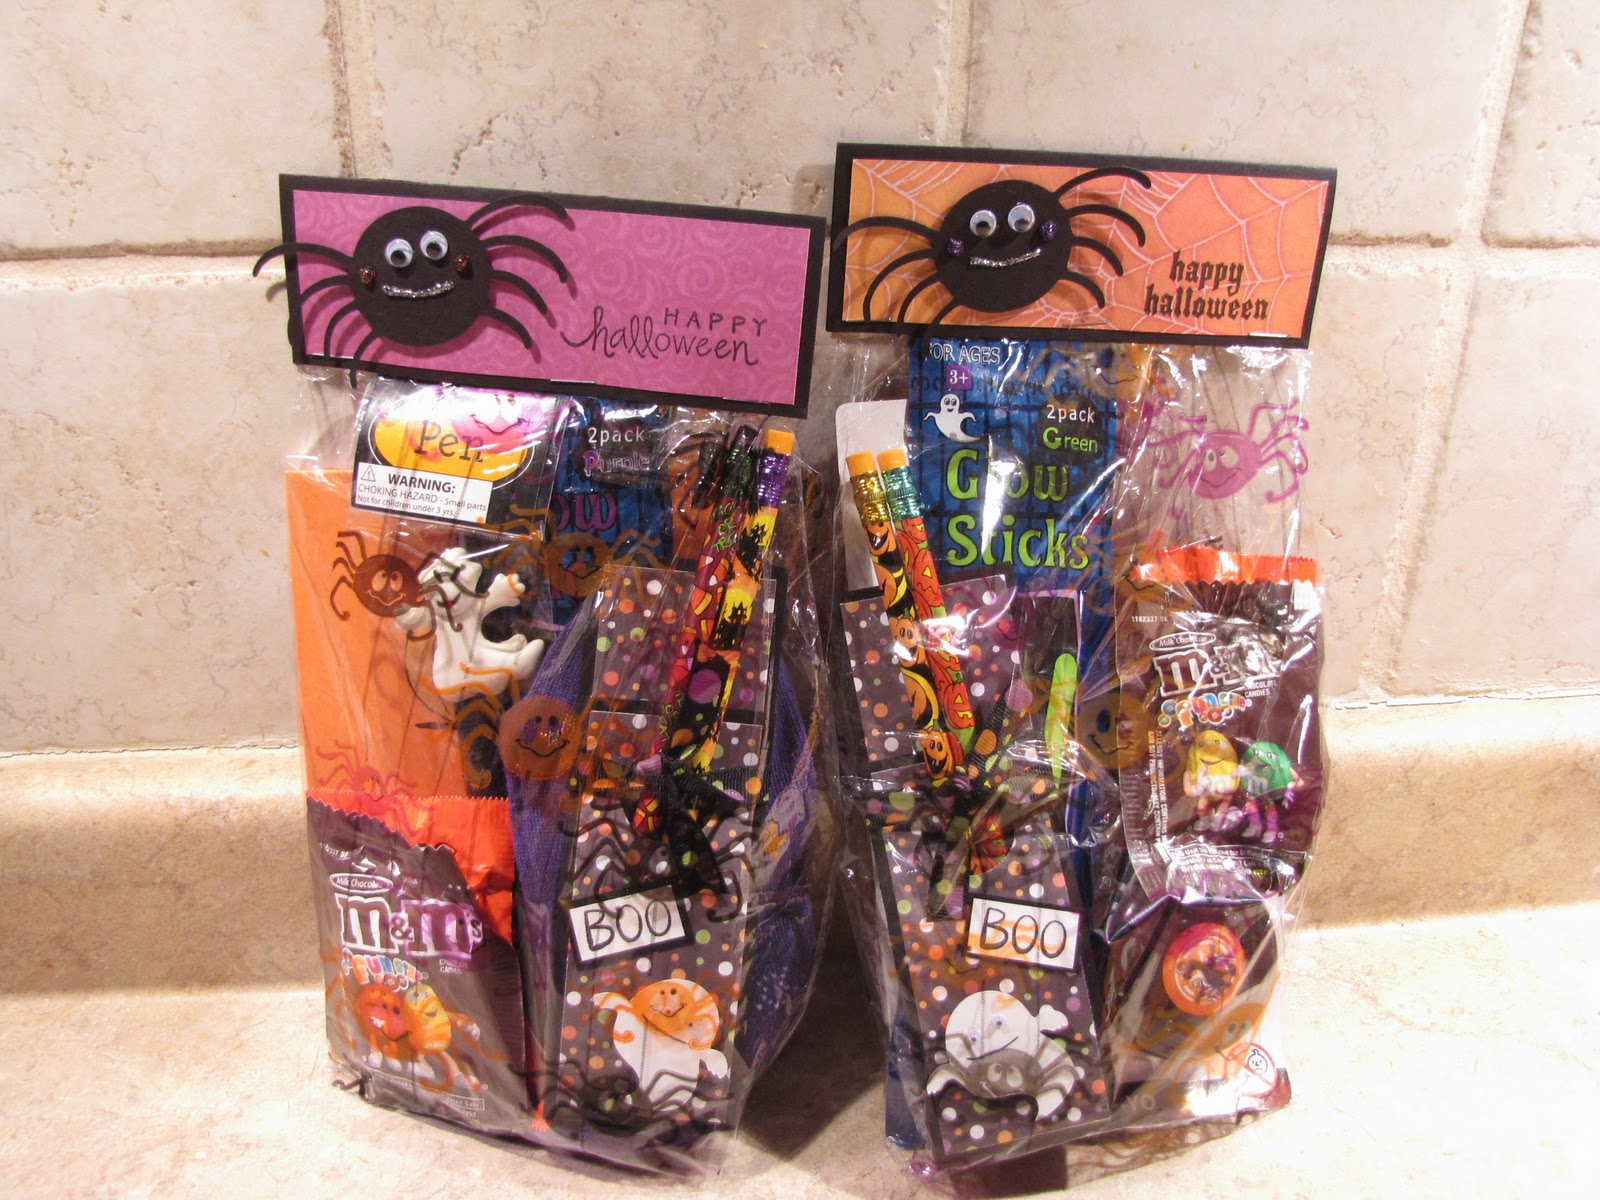 http://3.bp.blogspot.com/_5s_lNxKb_DM/TLaC0W9M9LI/AAAAAAAAADw/z9EPASaH8wM/s1600/Megan%20and%20Nicholas%20Halloween%20treat%20bags%202010.JPG